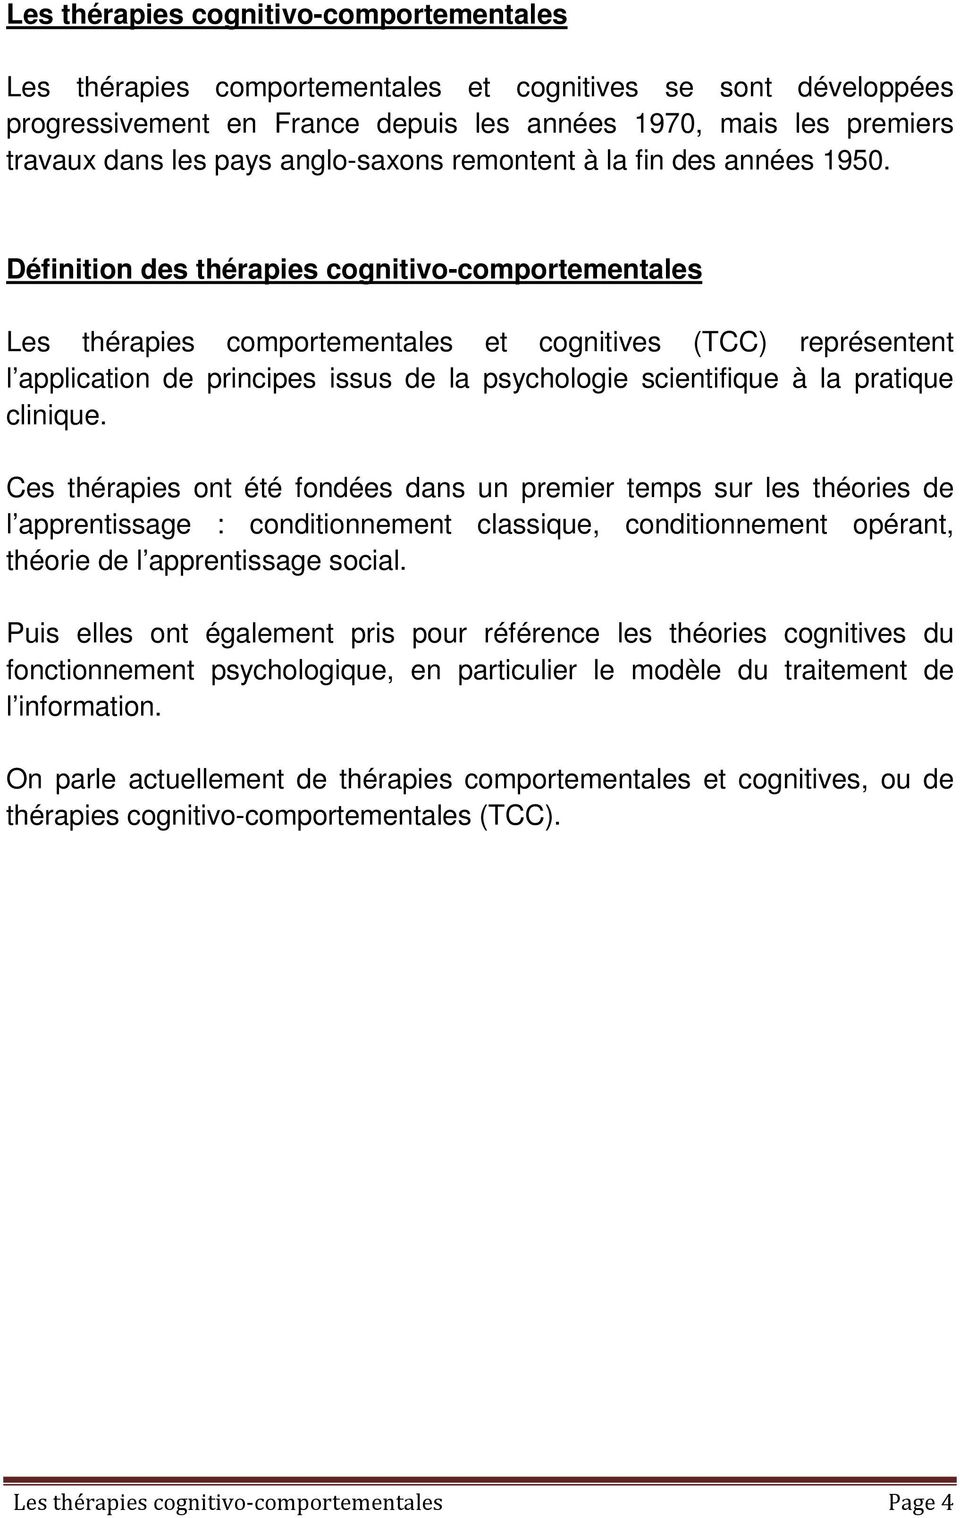 Définition des thérapies cognitivo-comportementales Les thérapies comportementales et cognitives (TCC) représentent l application de principes issus de la psychologie scientifique à la pratique